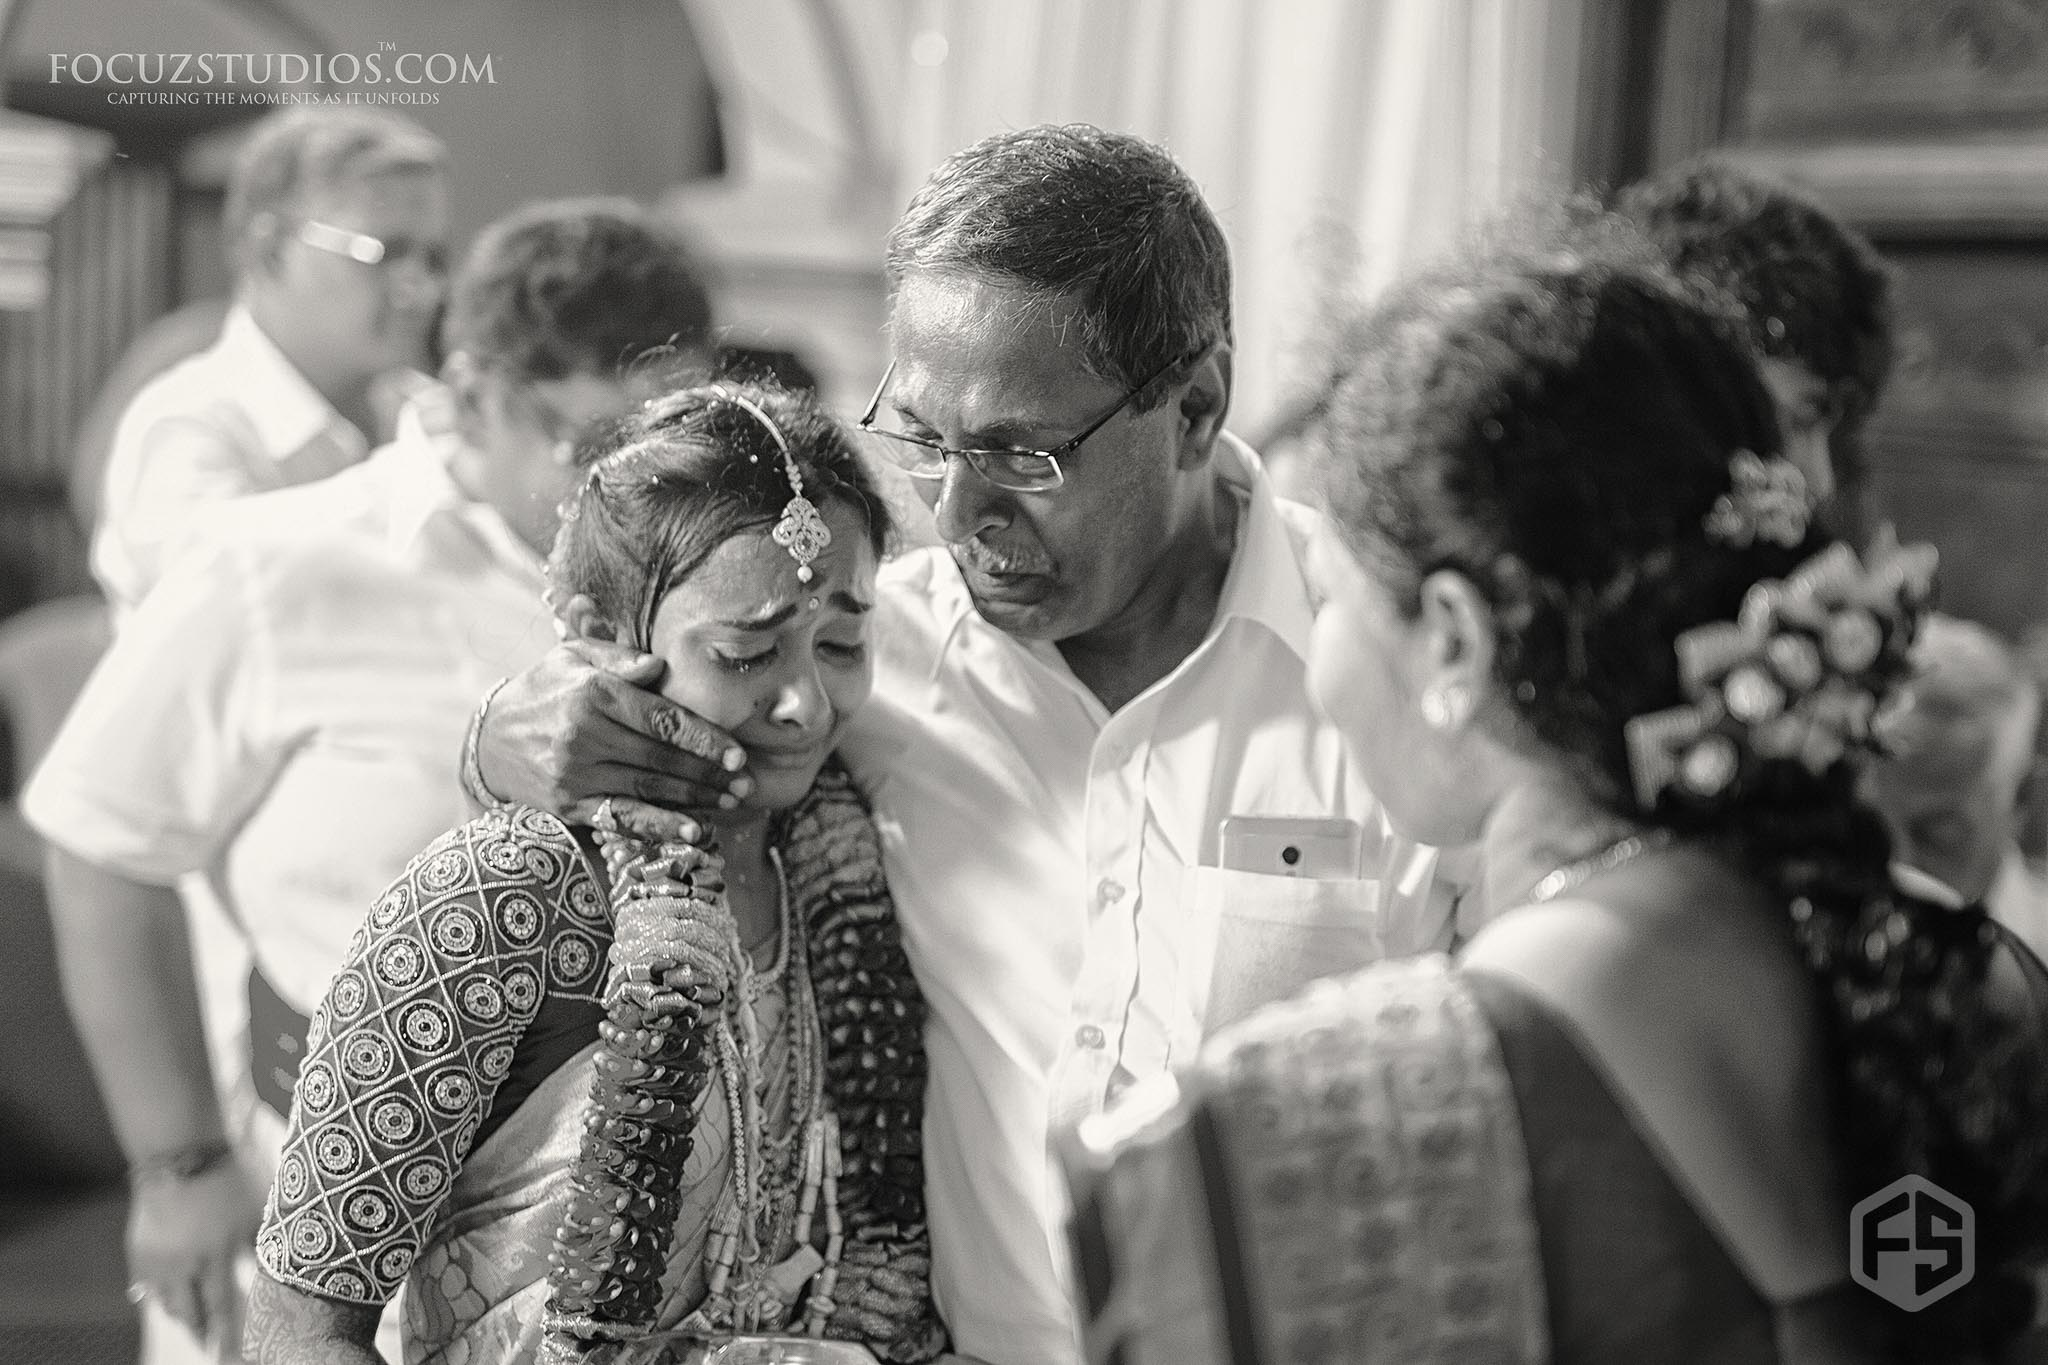 Nattukottai-chettiyar-wedding-photography-6